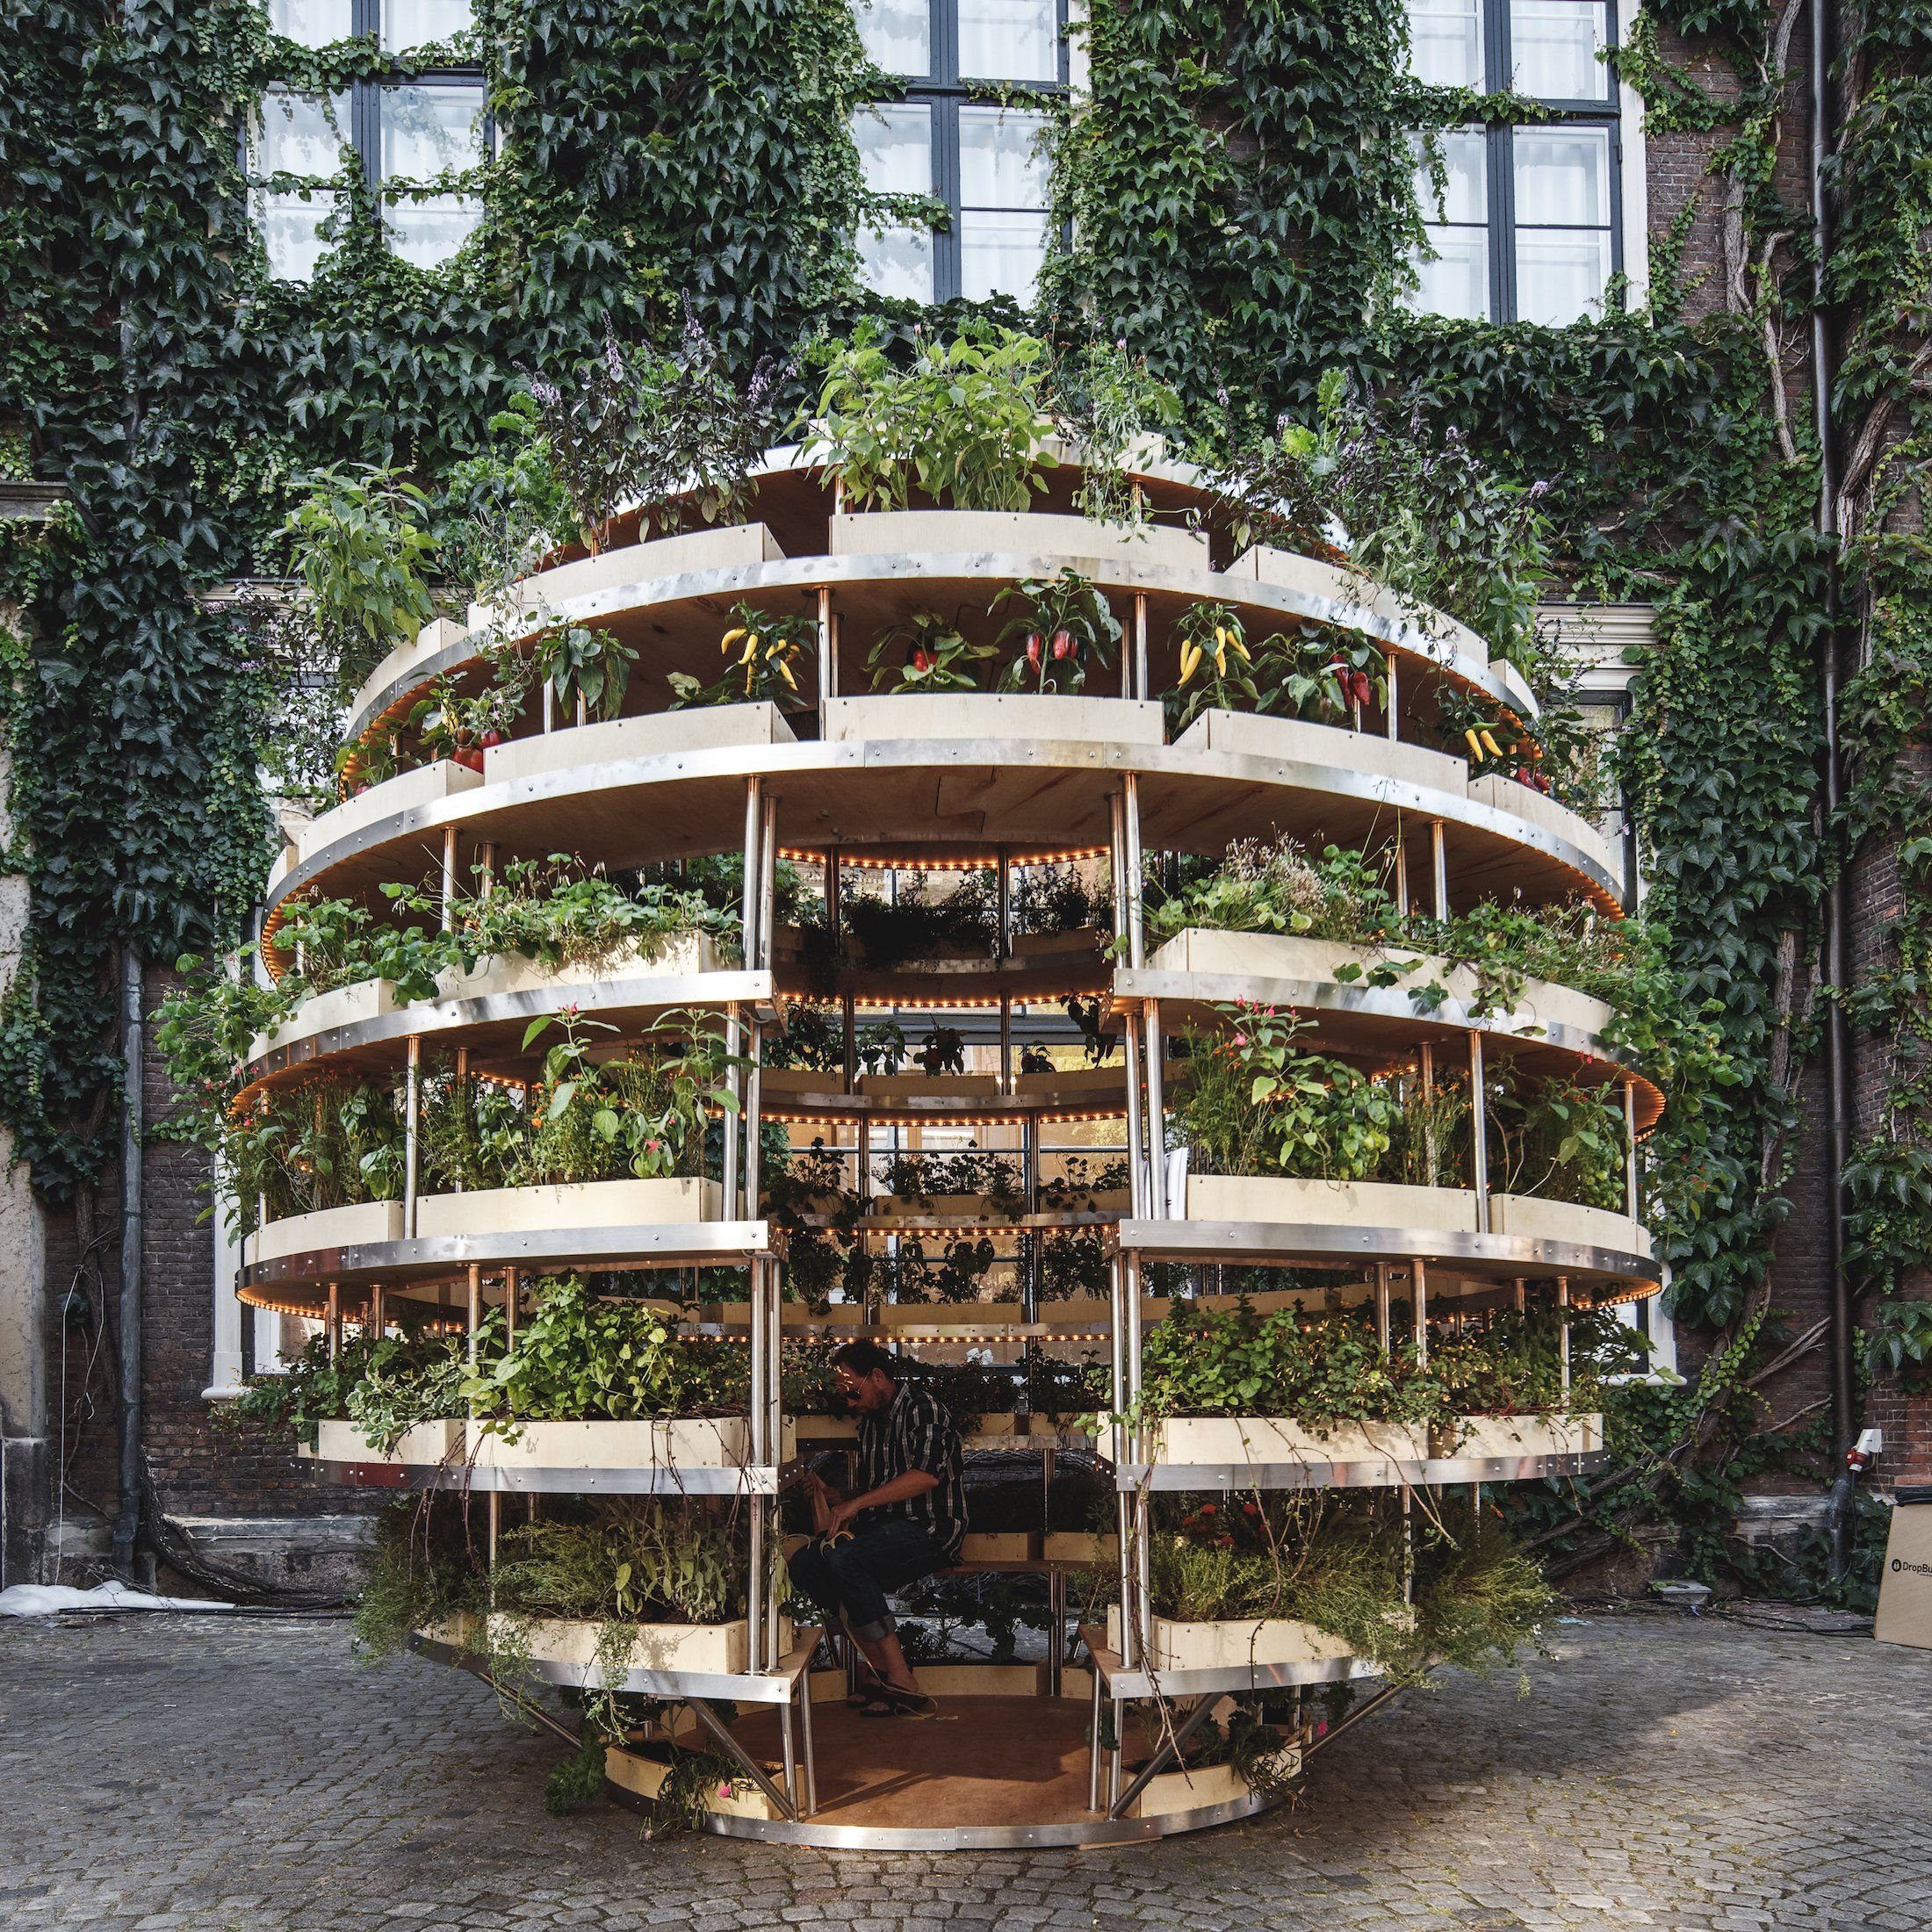 Ikea just launched a DIY flat-pack indoor garden that can feed a ...